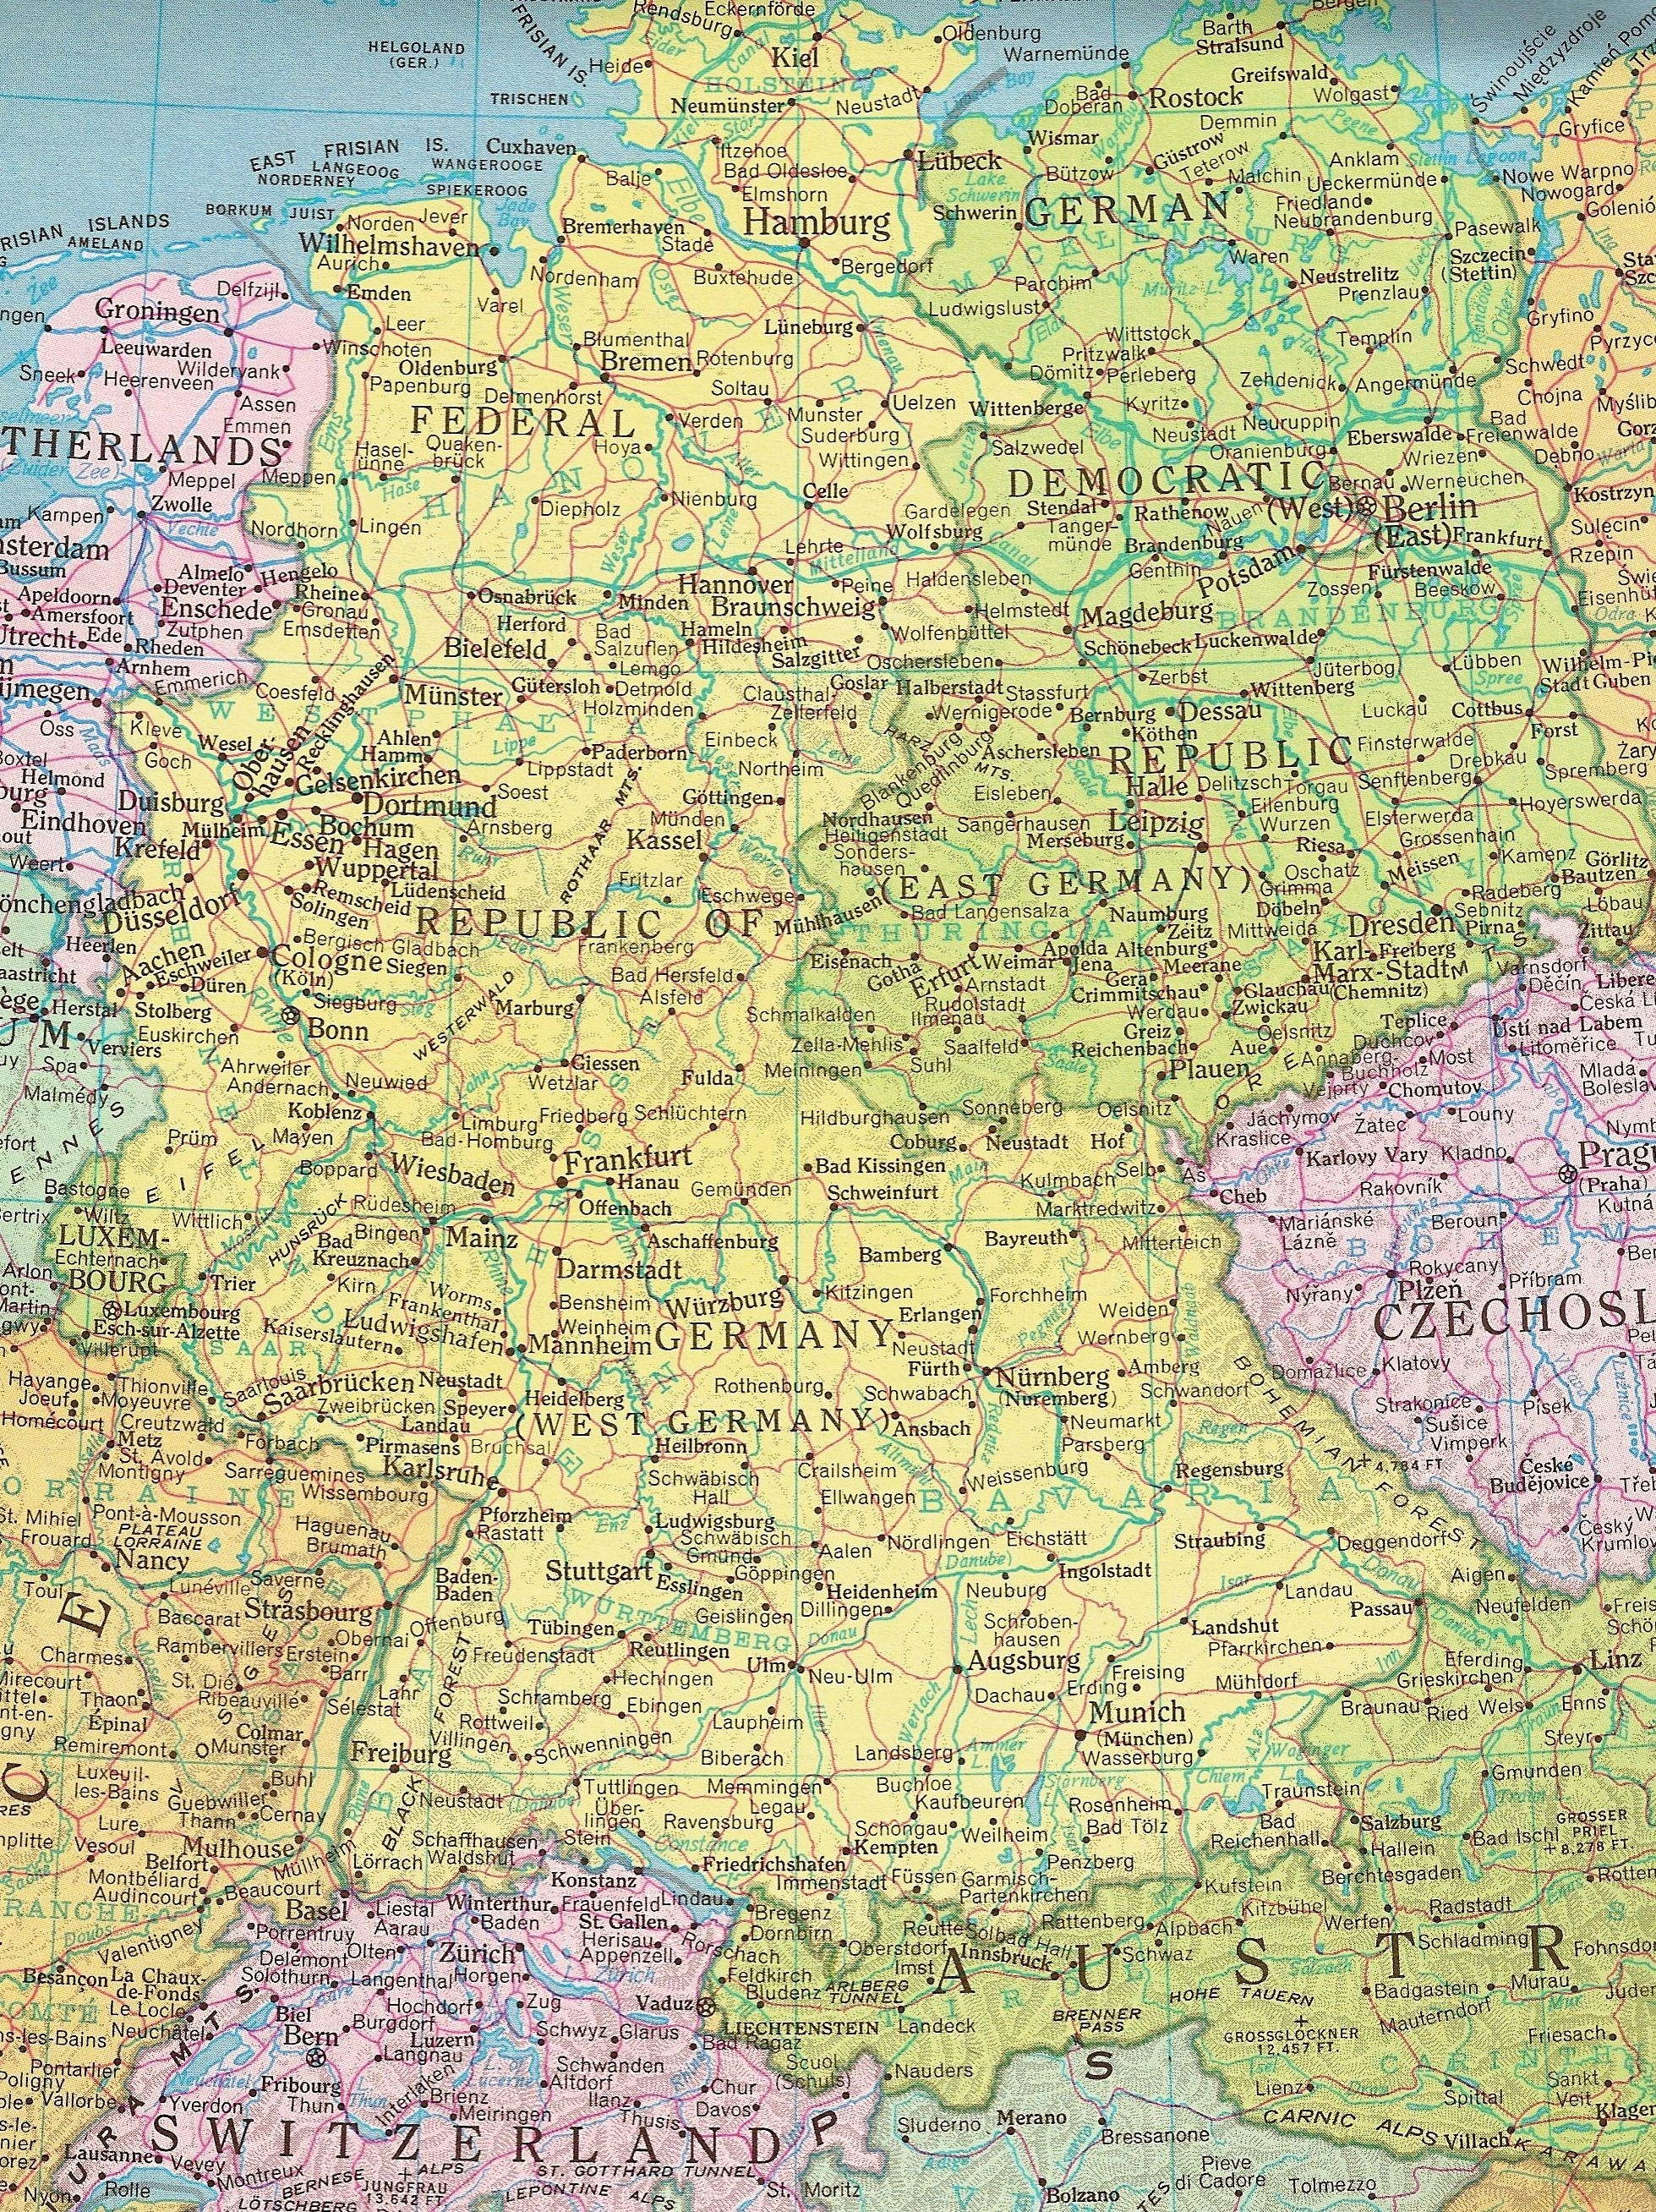 Former East Germany And West Germany | All Things German | East pertaining to East Germany Map